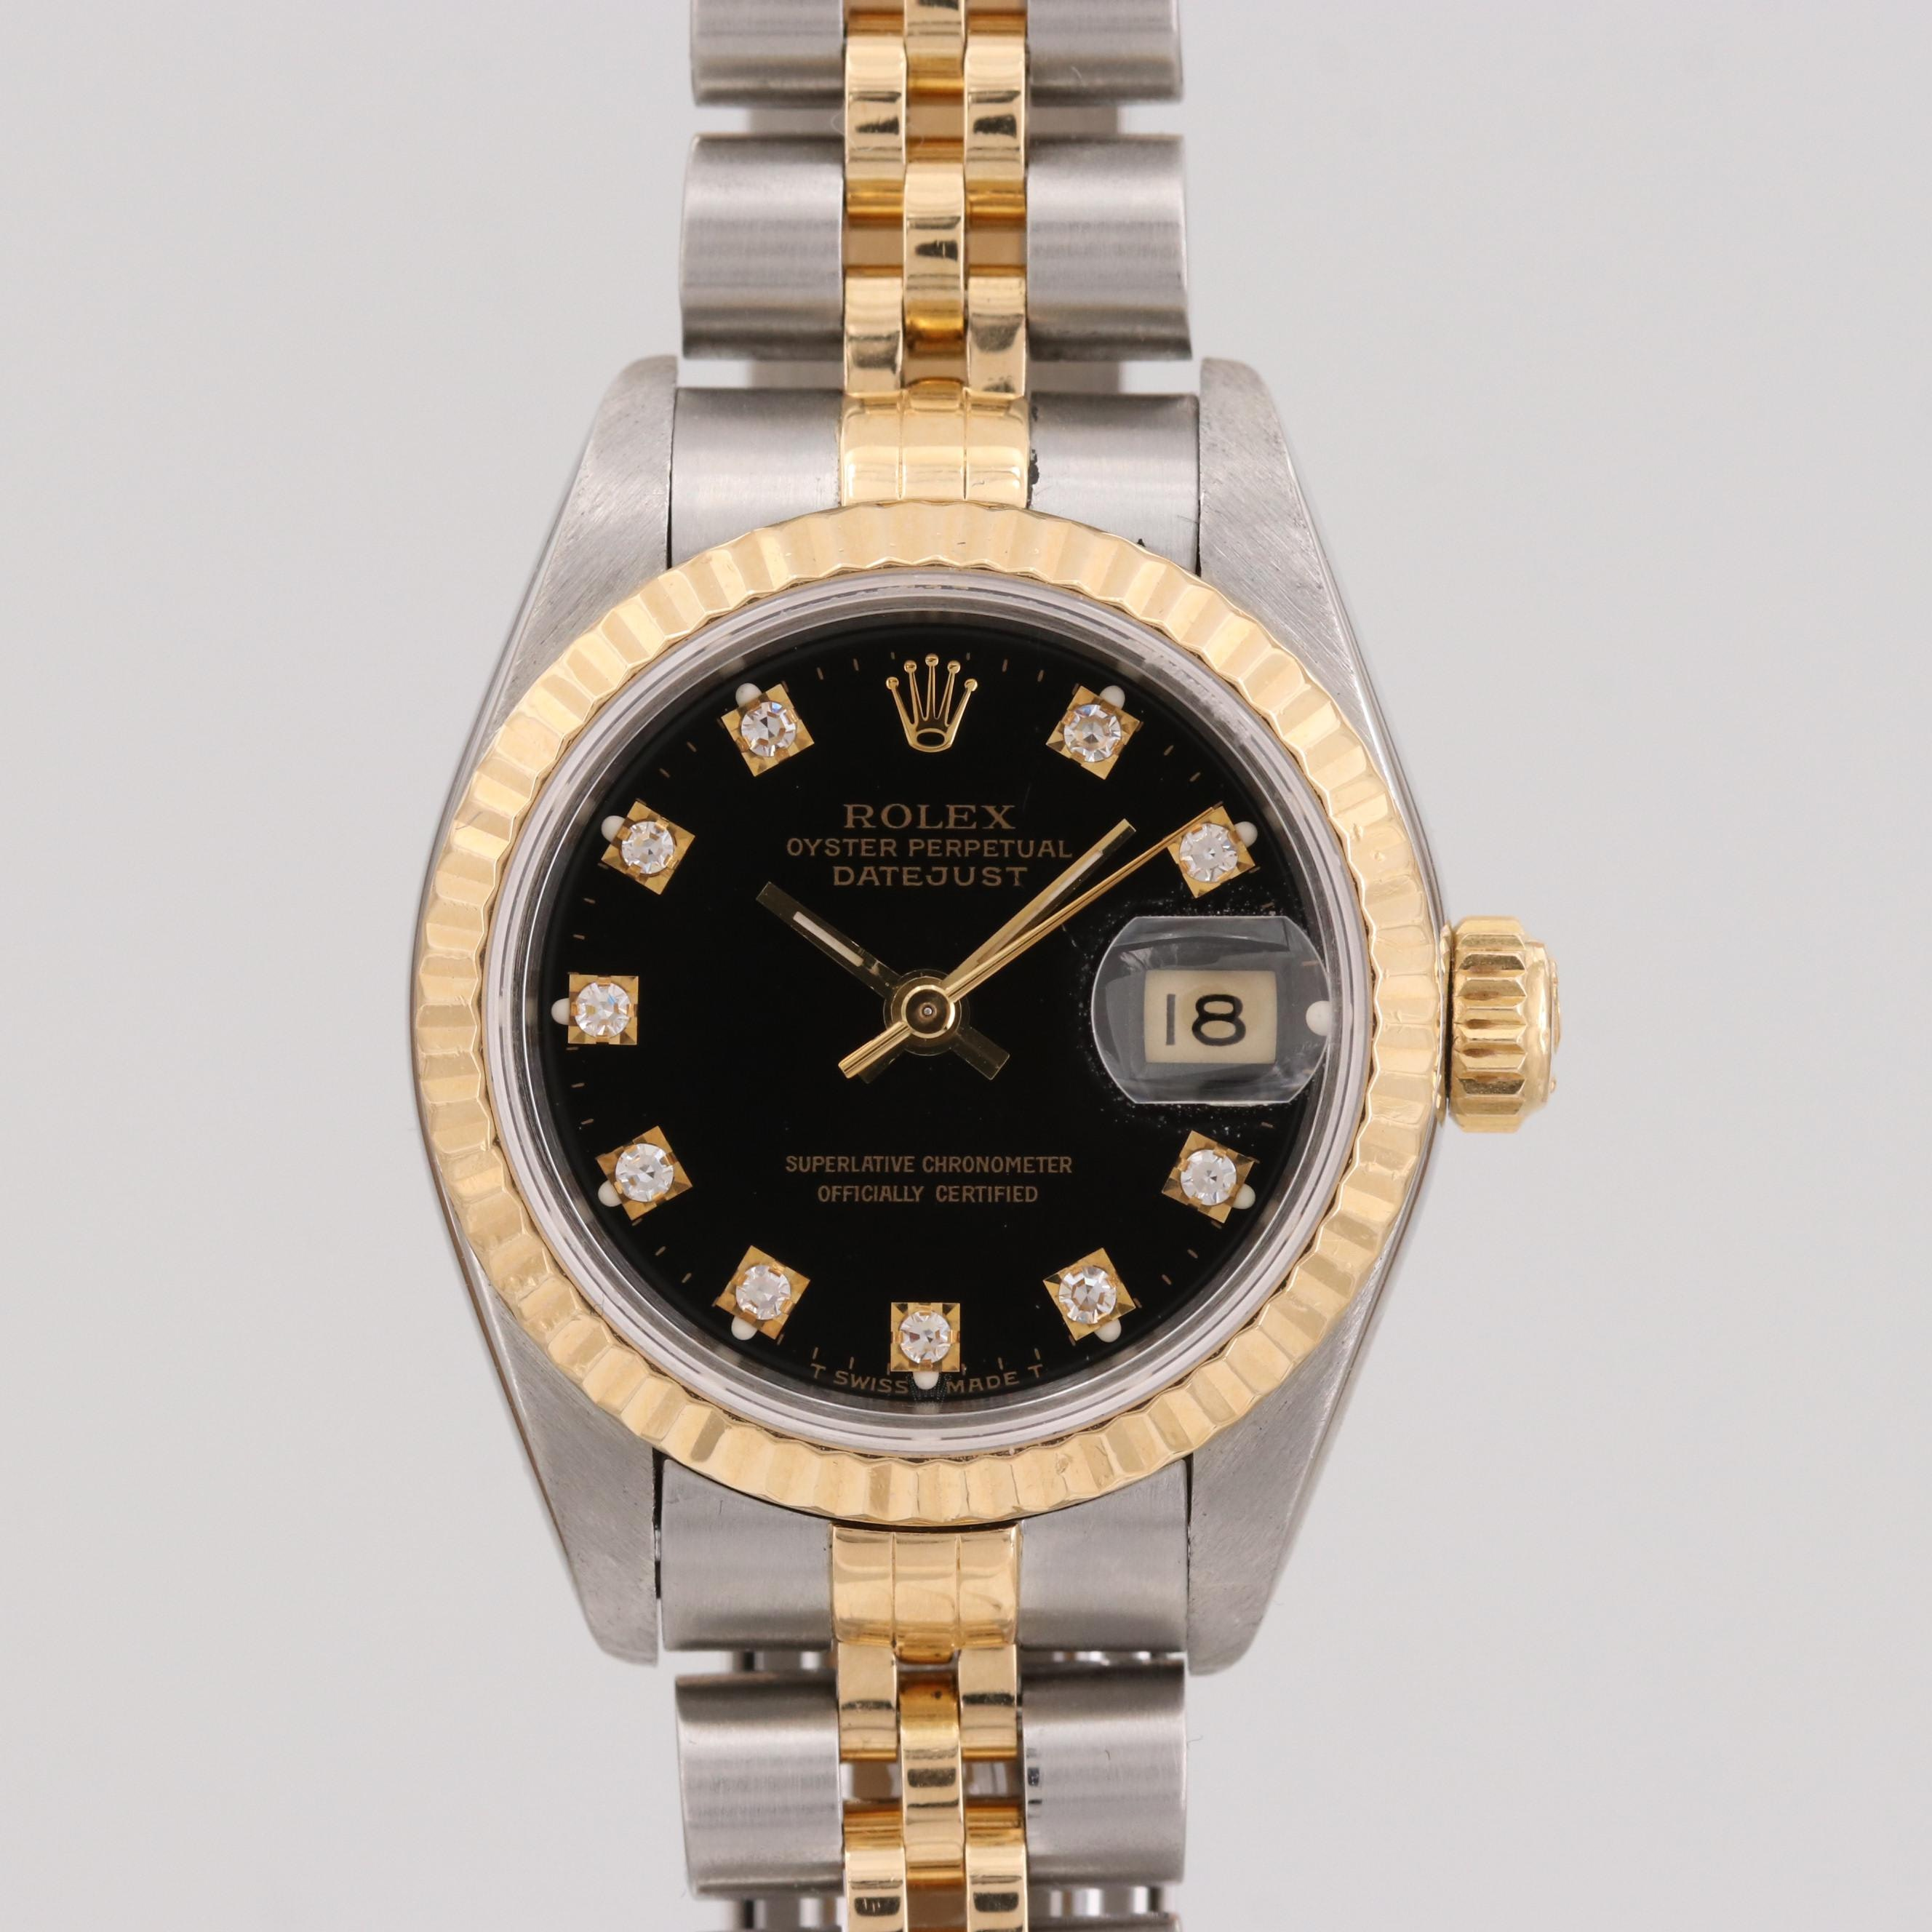 Rolex Datejust Stainless Steel, 18K Yellow Gold and Diamonds Wristwatch, 1993